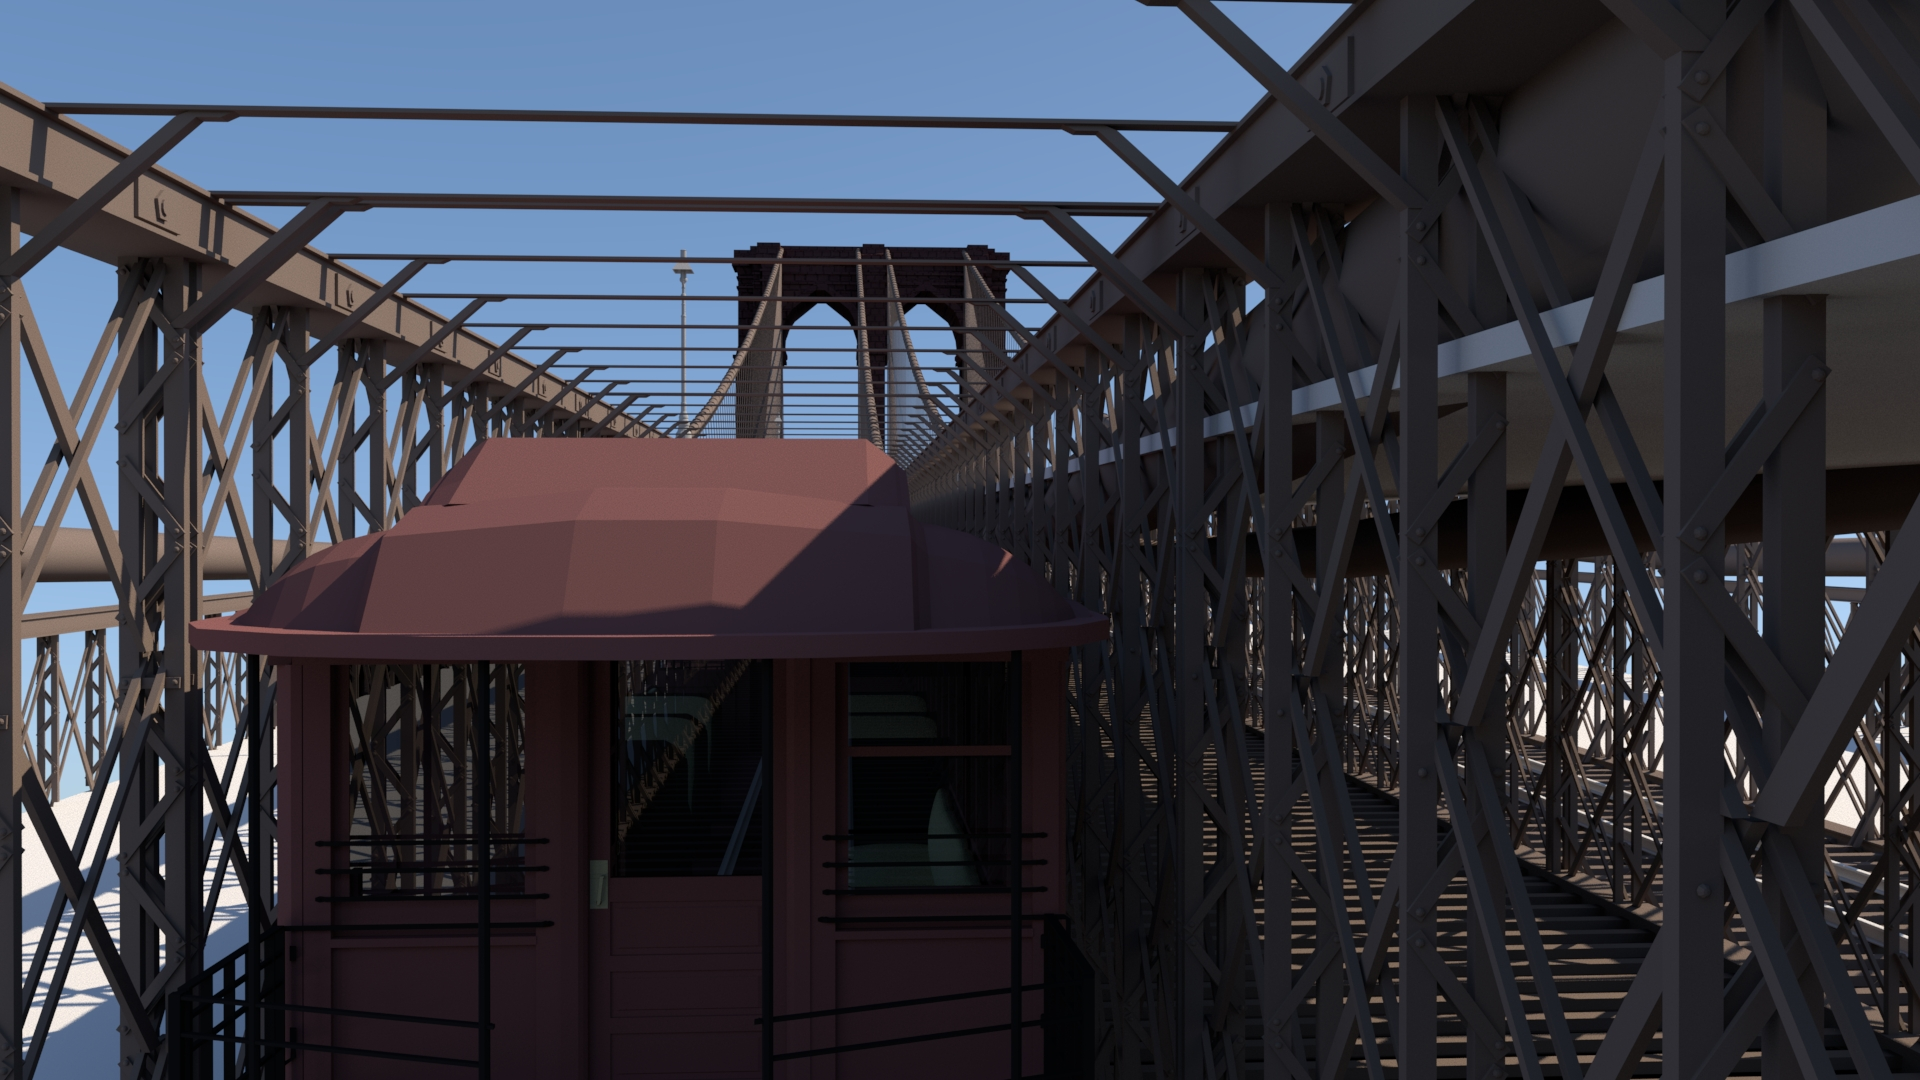 This rendering is of the BU Elevated Train model I did for Brooklyn Bridge VR. In my original plans, the player could have the option of exploring the Brooklyn Bridge either on foot or on train.